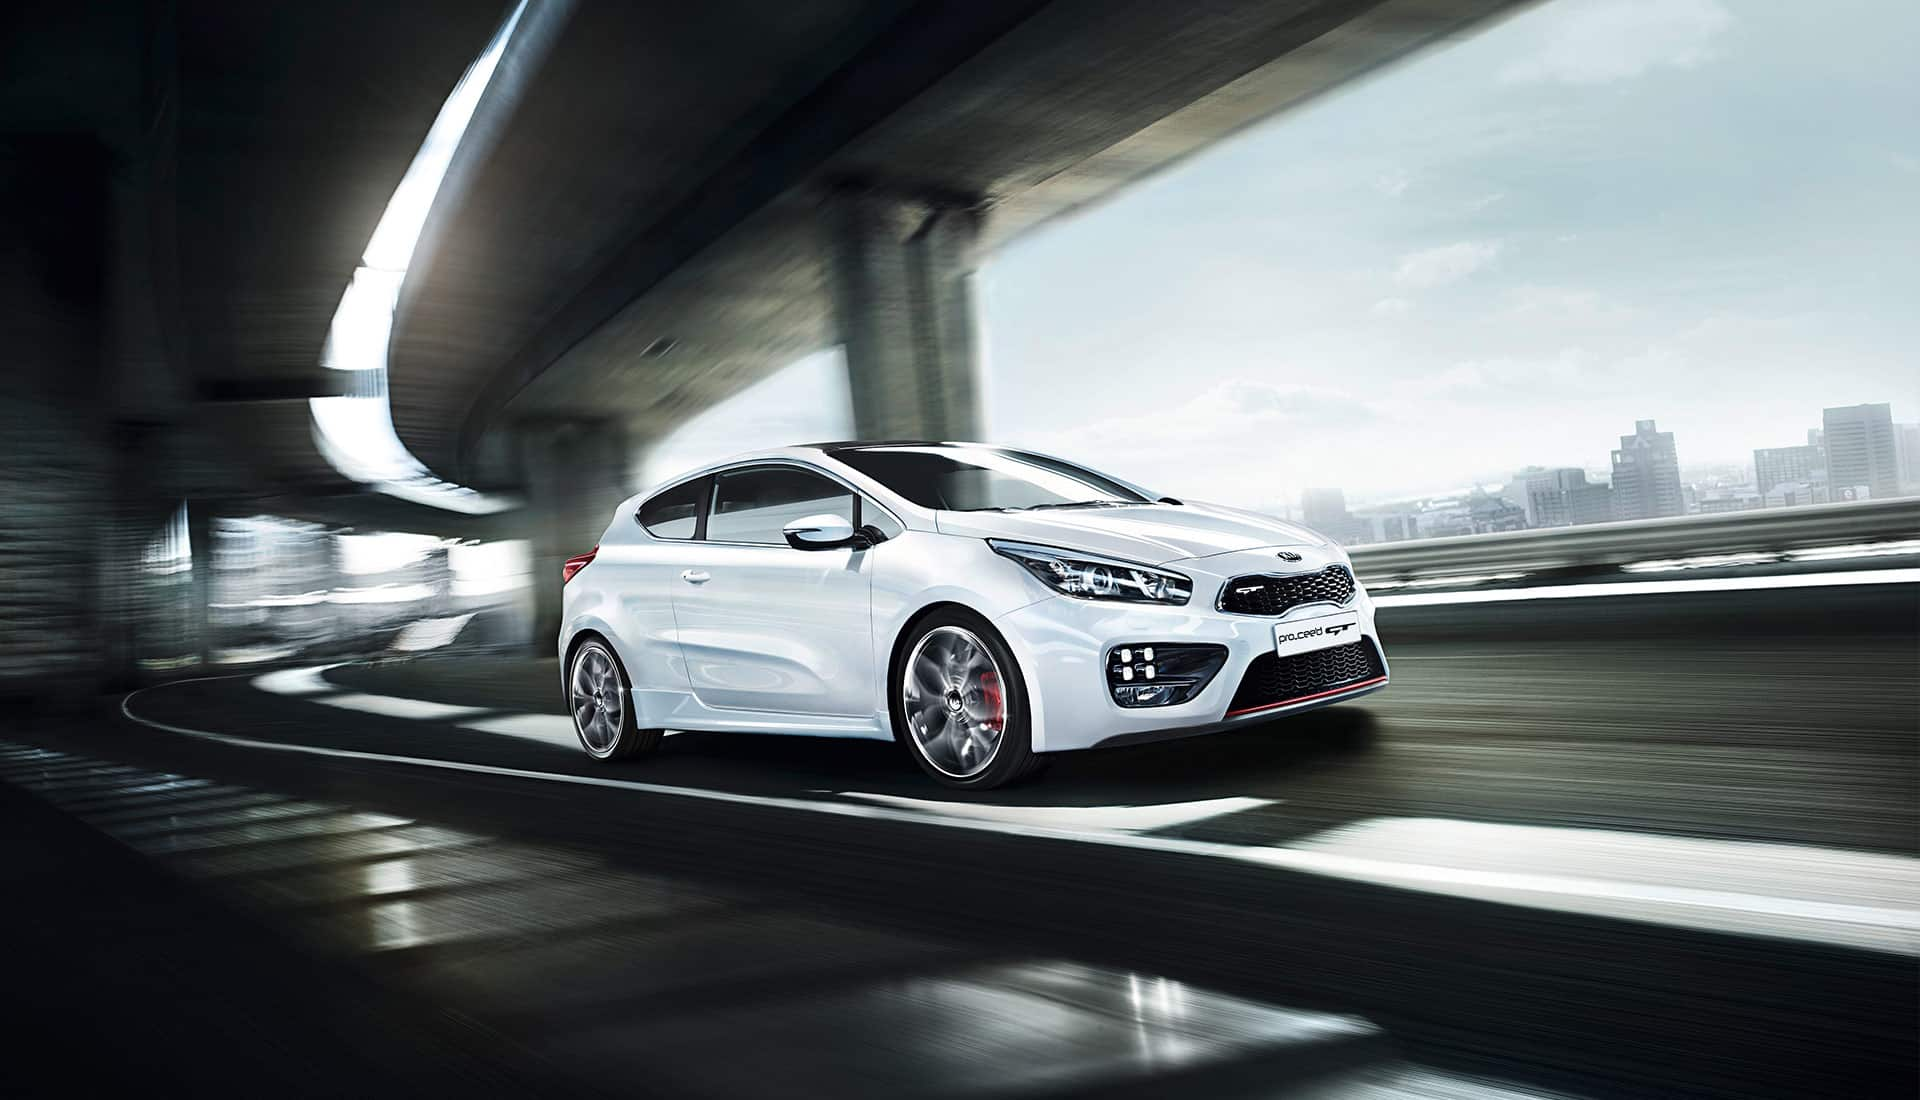 The new Kia pro_cee'd